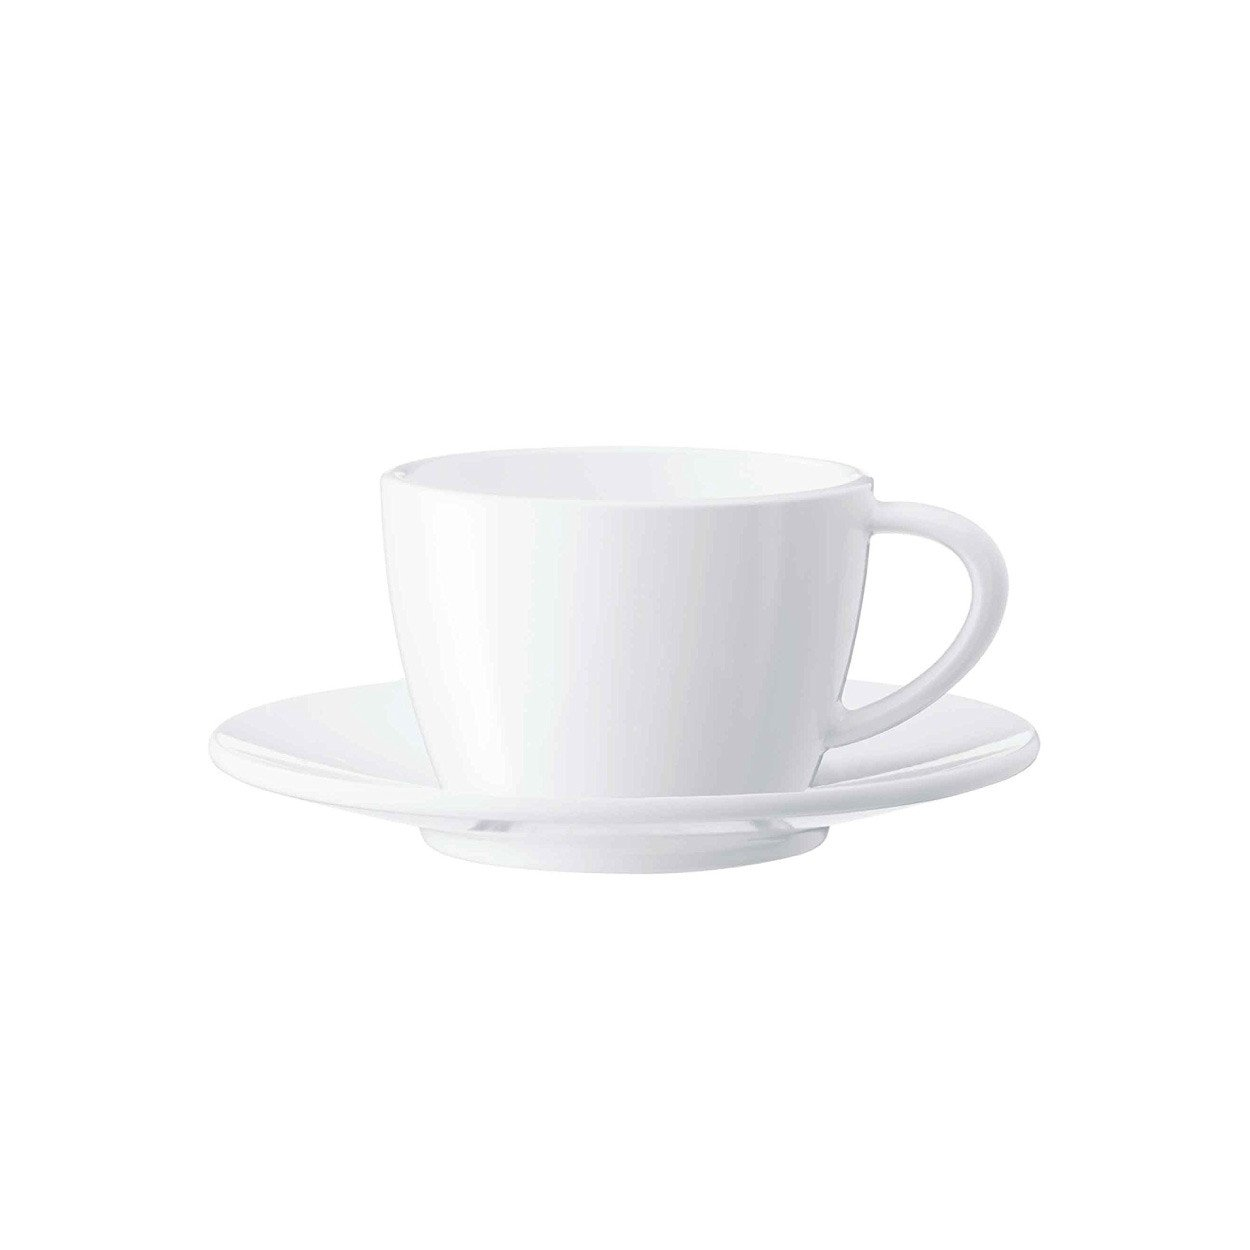 Jura Cappuccino Cups Boxed Set of 2